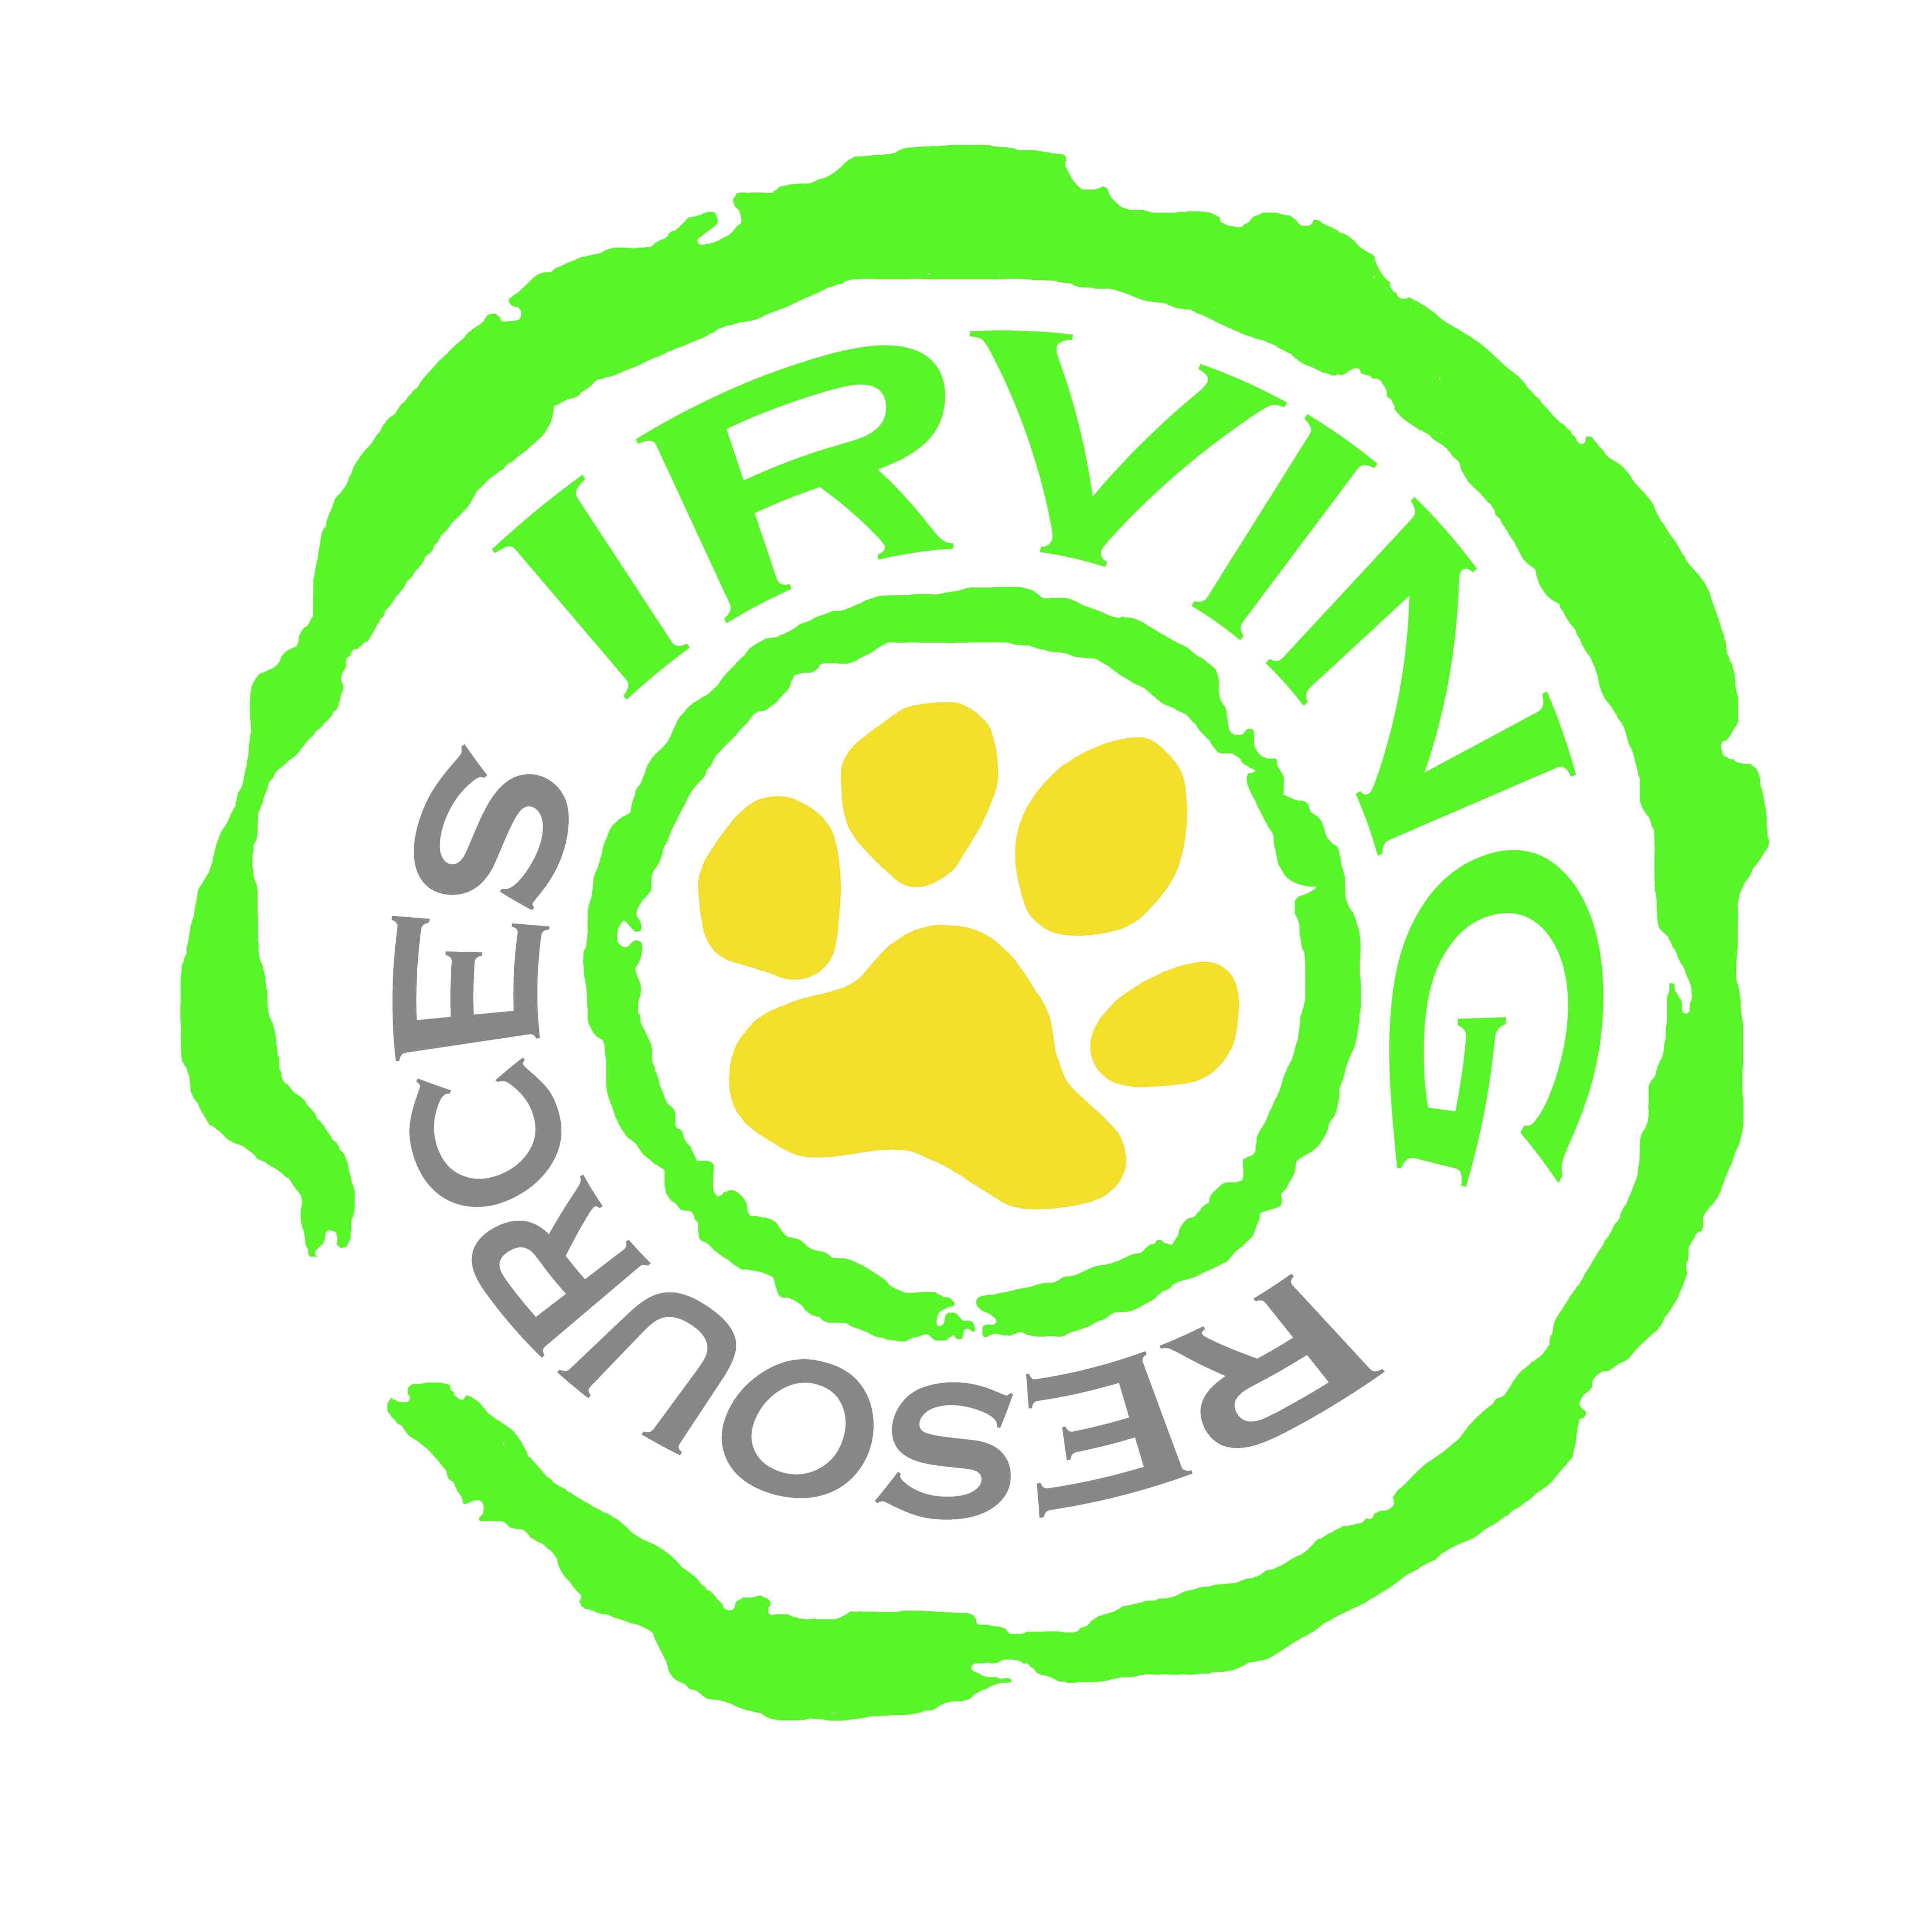 Irving Resources Applies for Prospecting Licenses Over Large Land Position Covering Multiple Geochemical Anomalies on the Noto Peninsula, Honshu, Japan